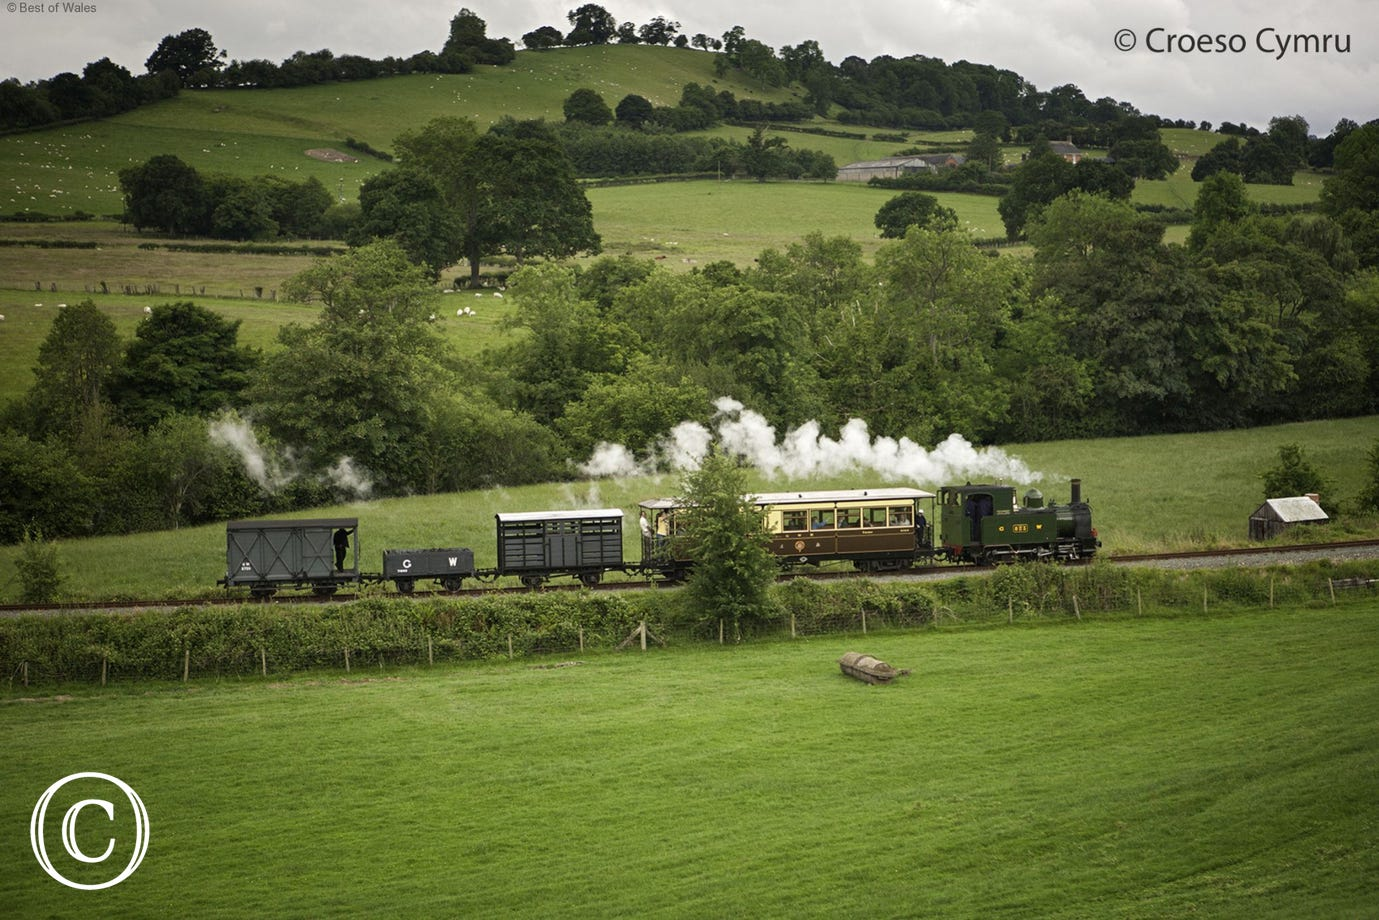 Steam train from Welshpool to Llanfair Caereinion